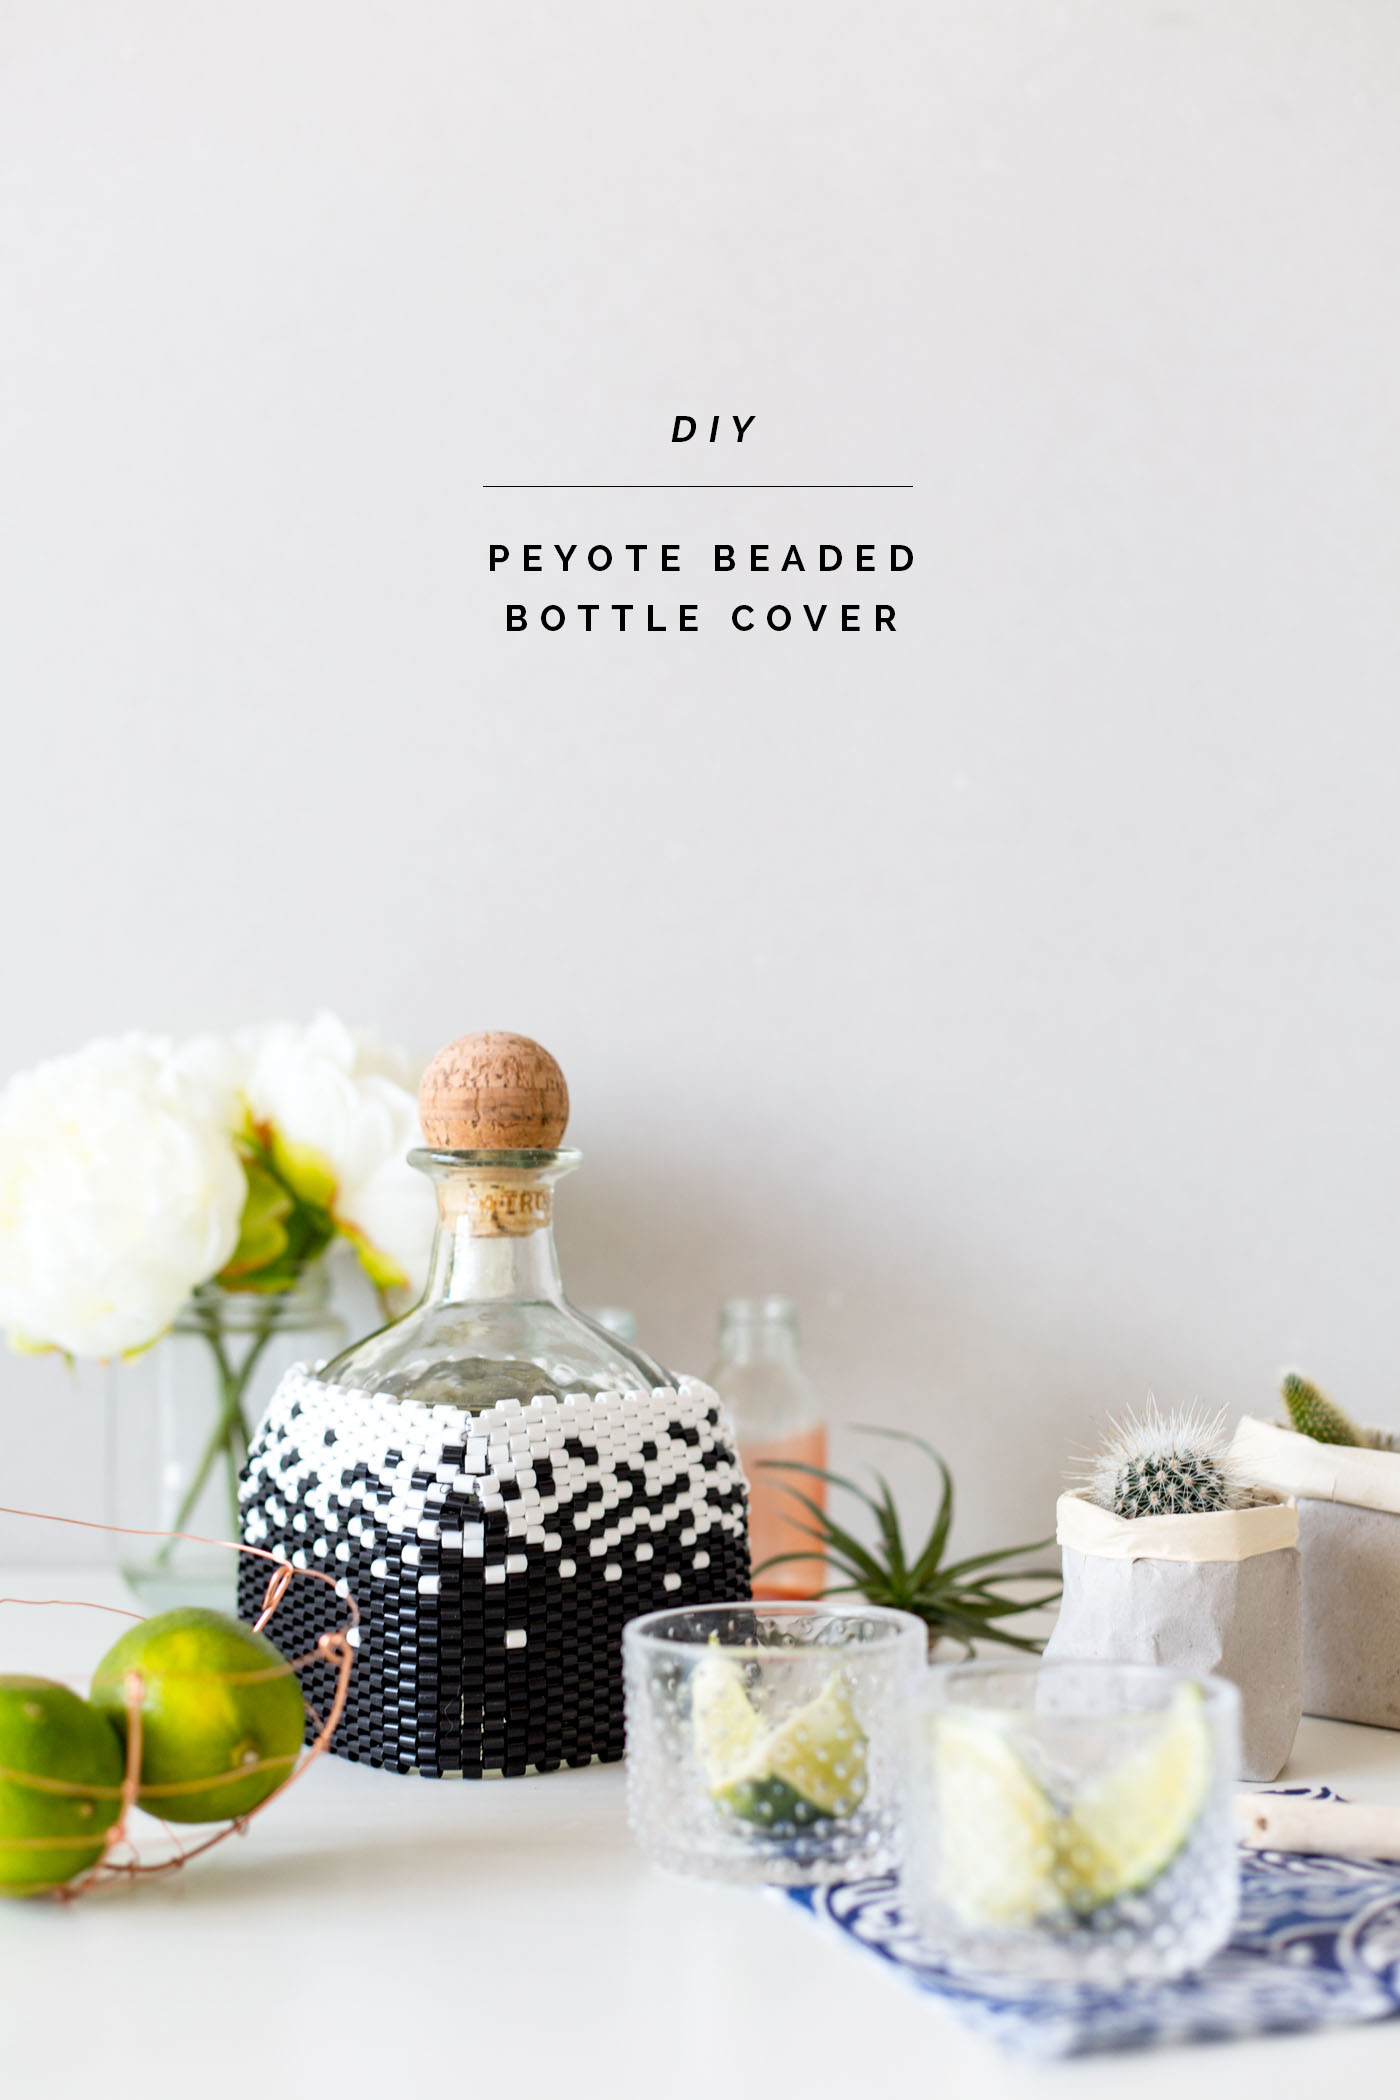 diy-beaded-bottle-cover-in-peyote-stitch-with-tutorial-fallfordiy